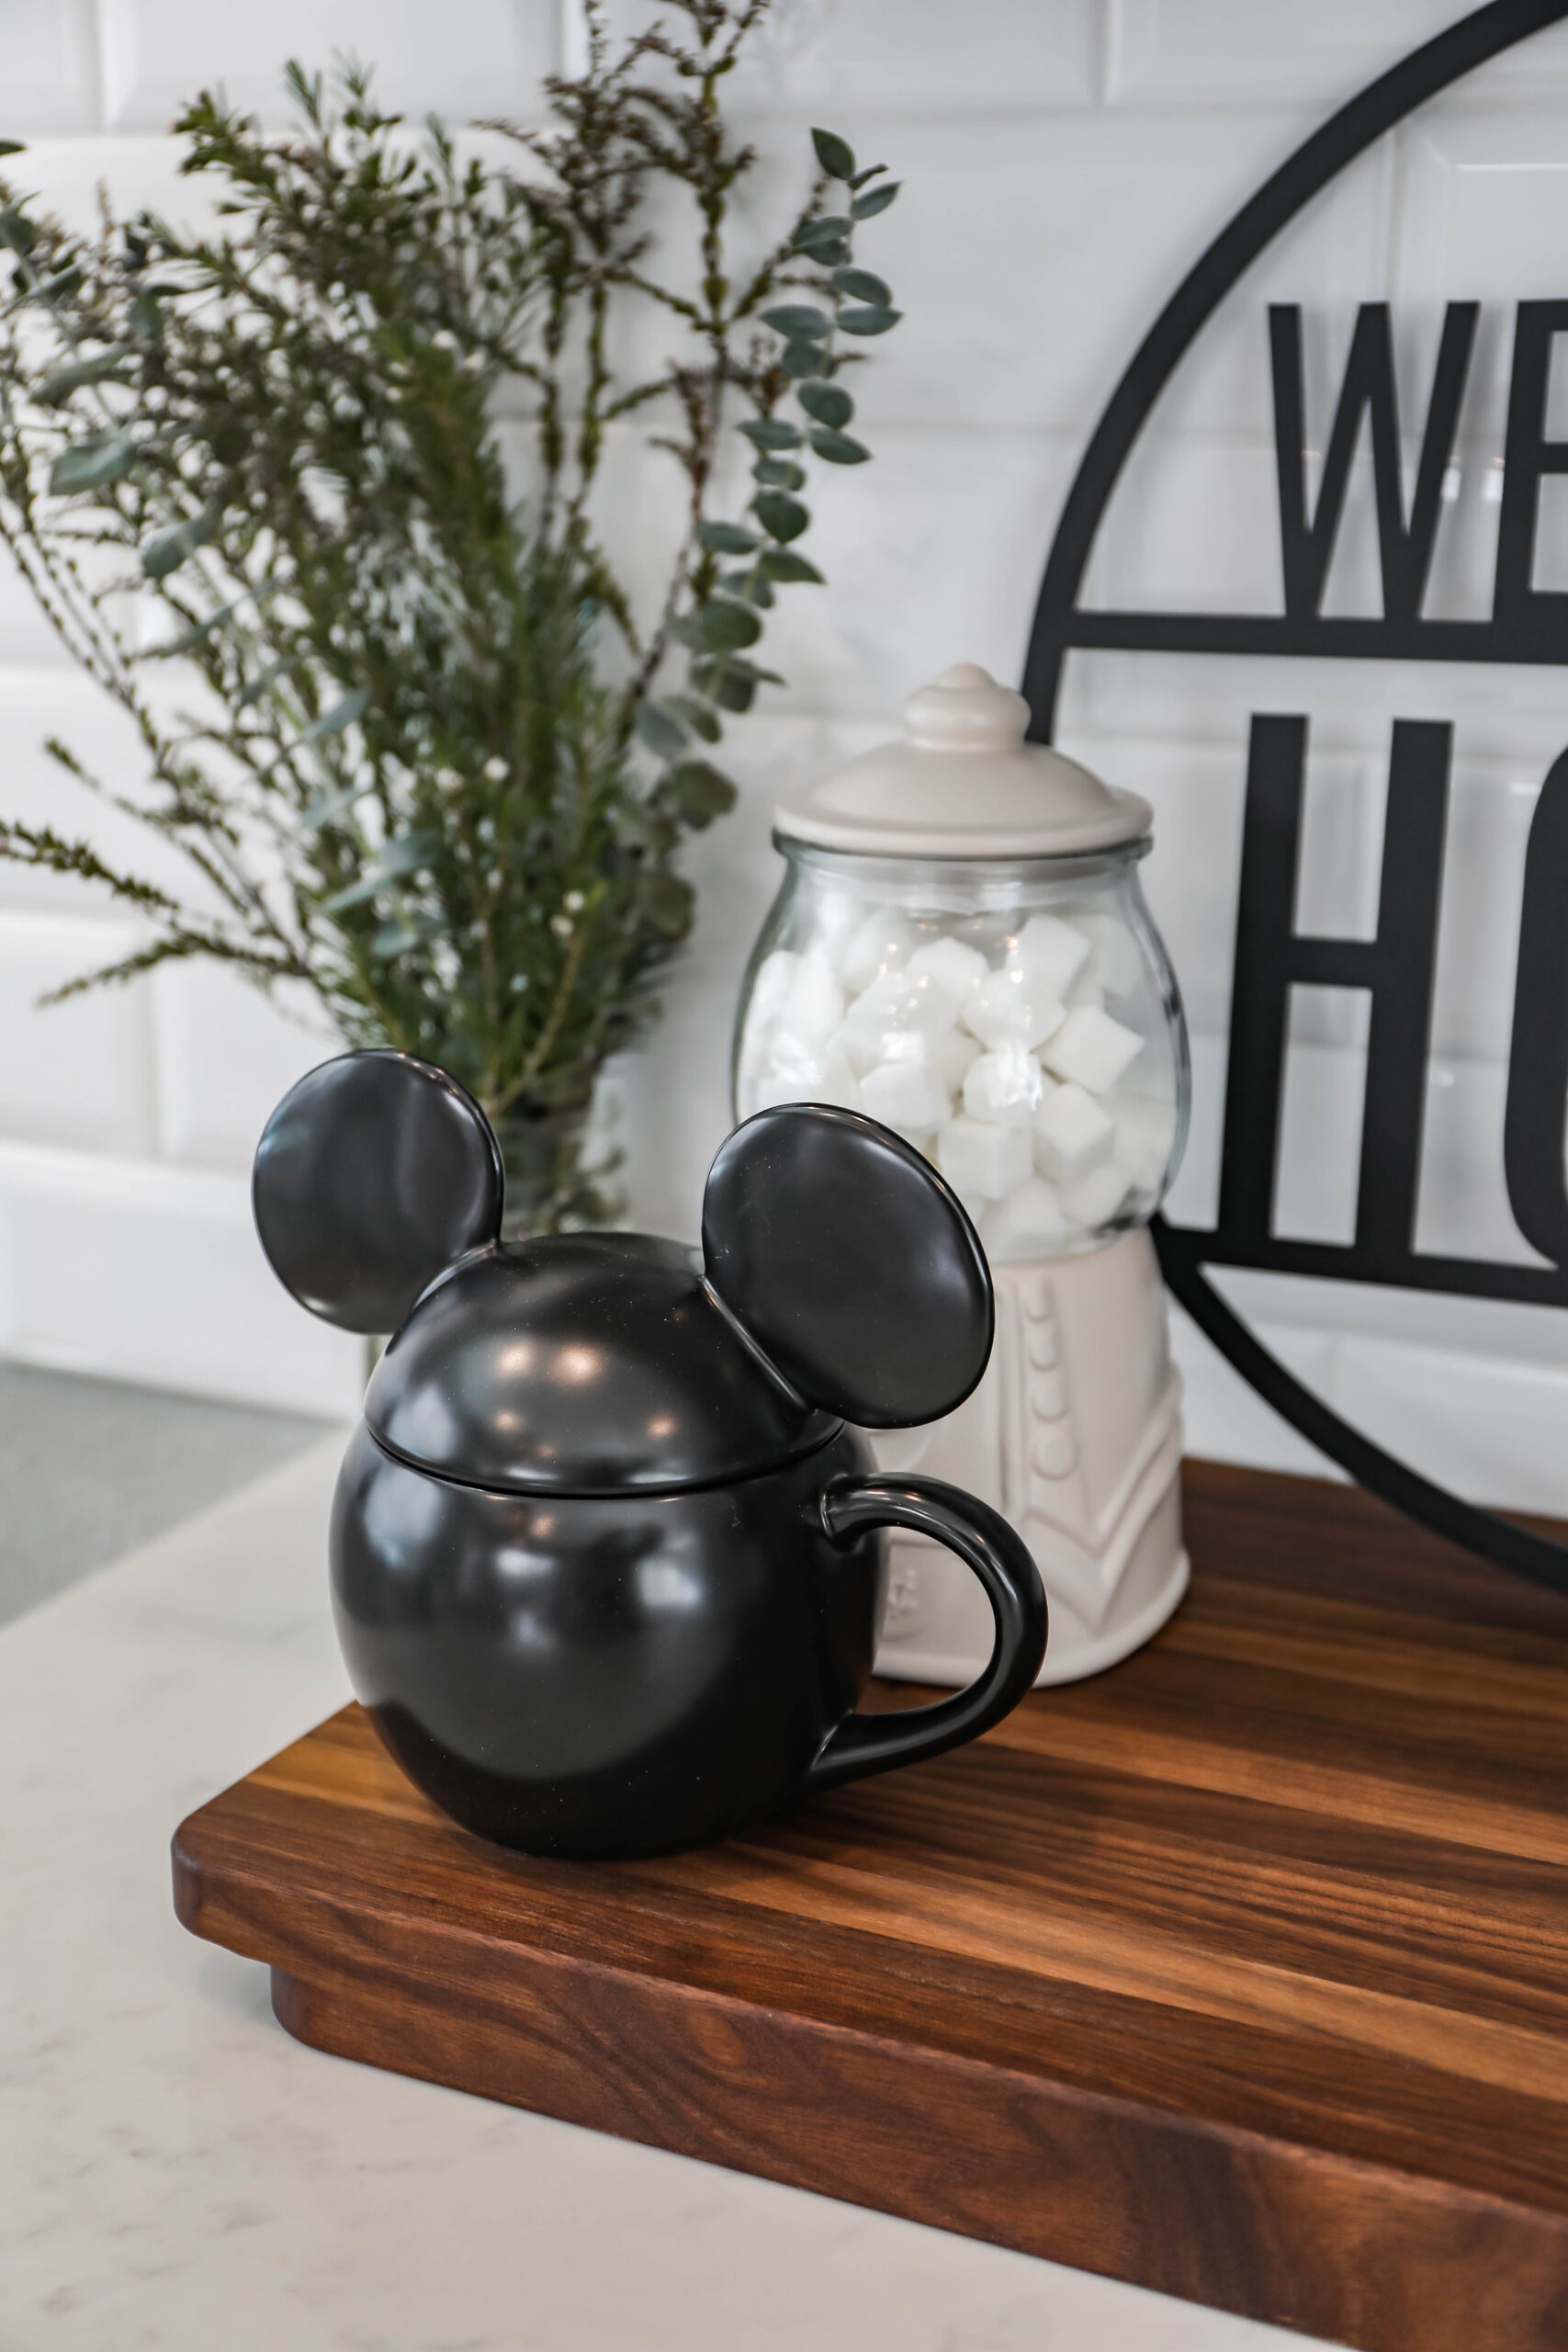 This home coffee station is just adorable!